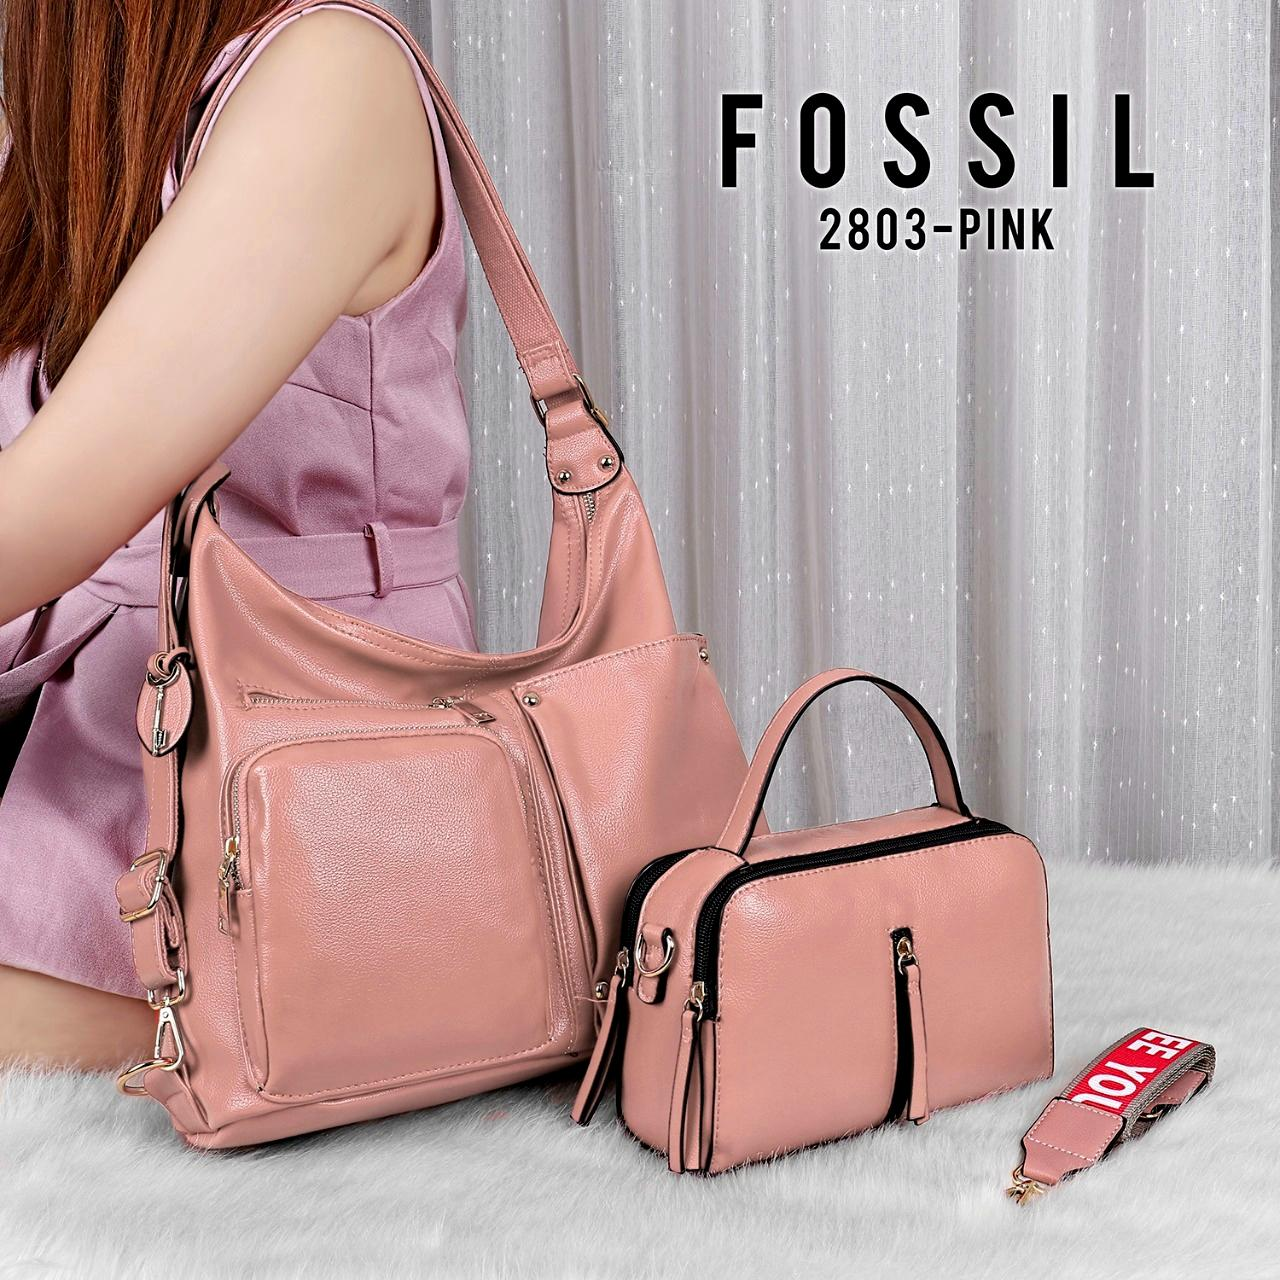 Buy Sell Cheapest Fossil Riley Hobo Best Quality Product Deals Ready Nwt Maya Brown New Bag 3 Fungsi Seri 2803